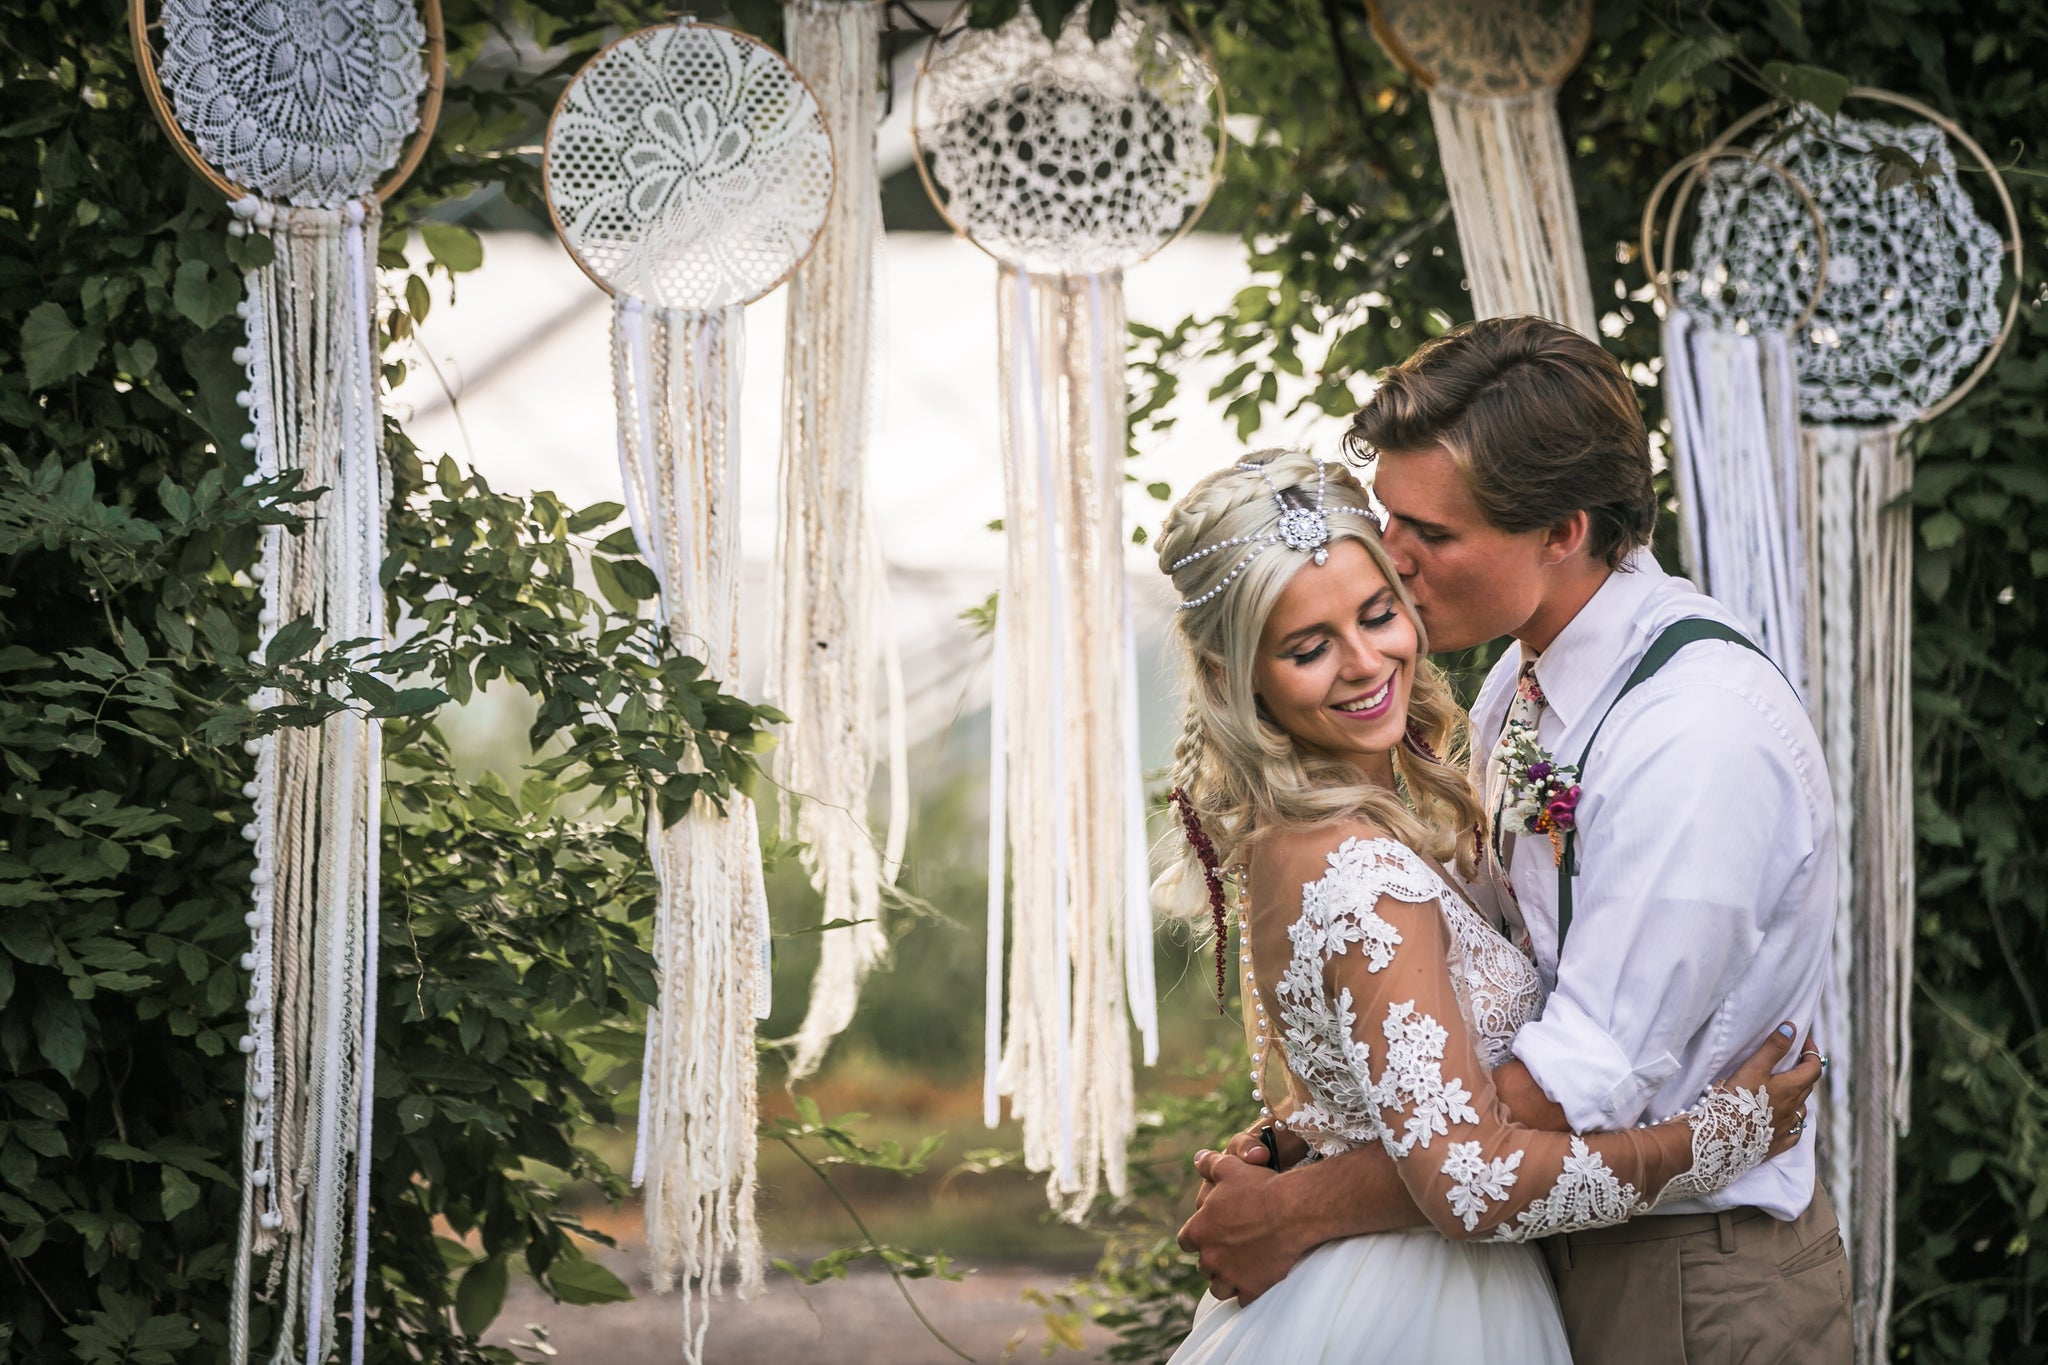 Dreamcatchers at a wedding